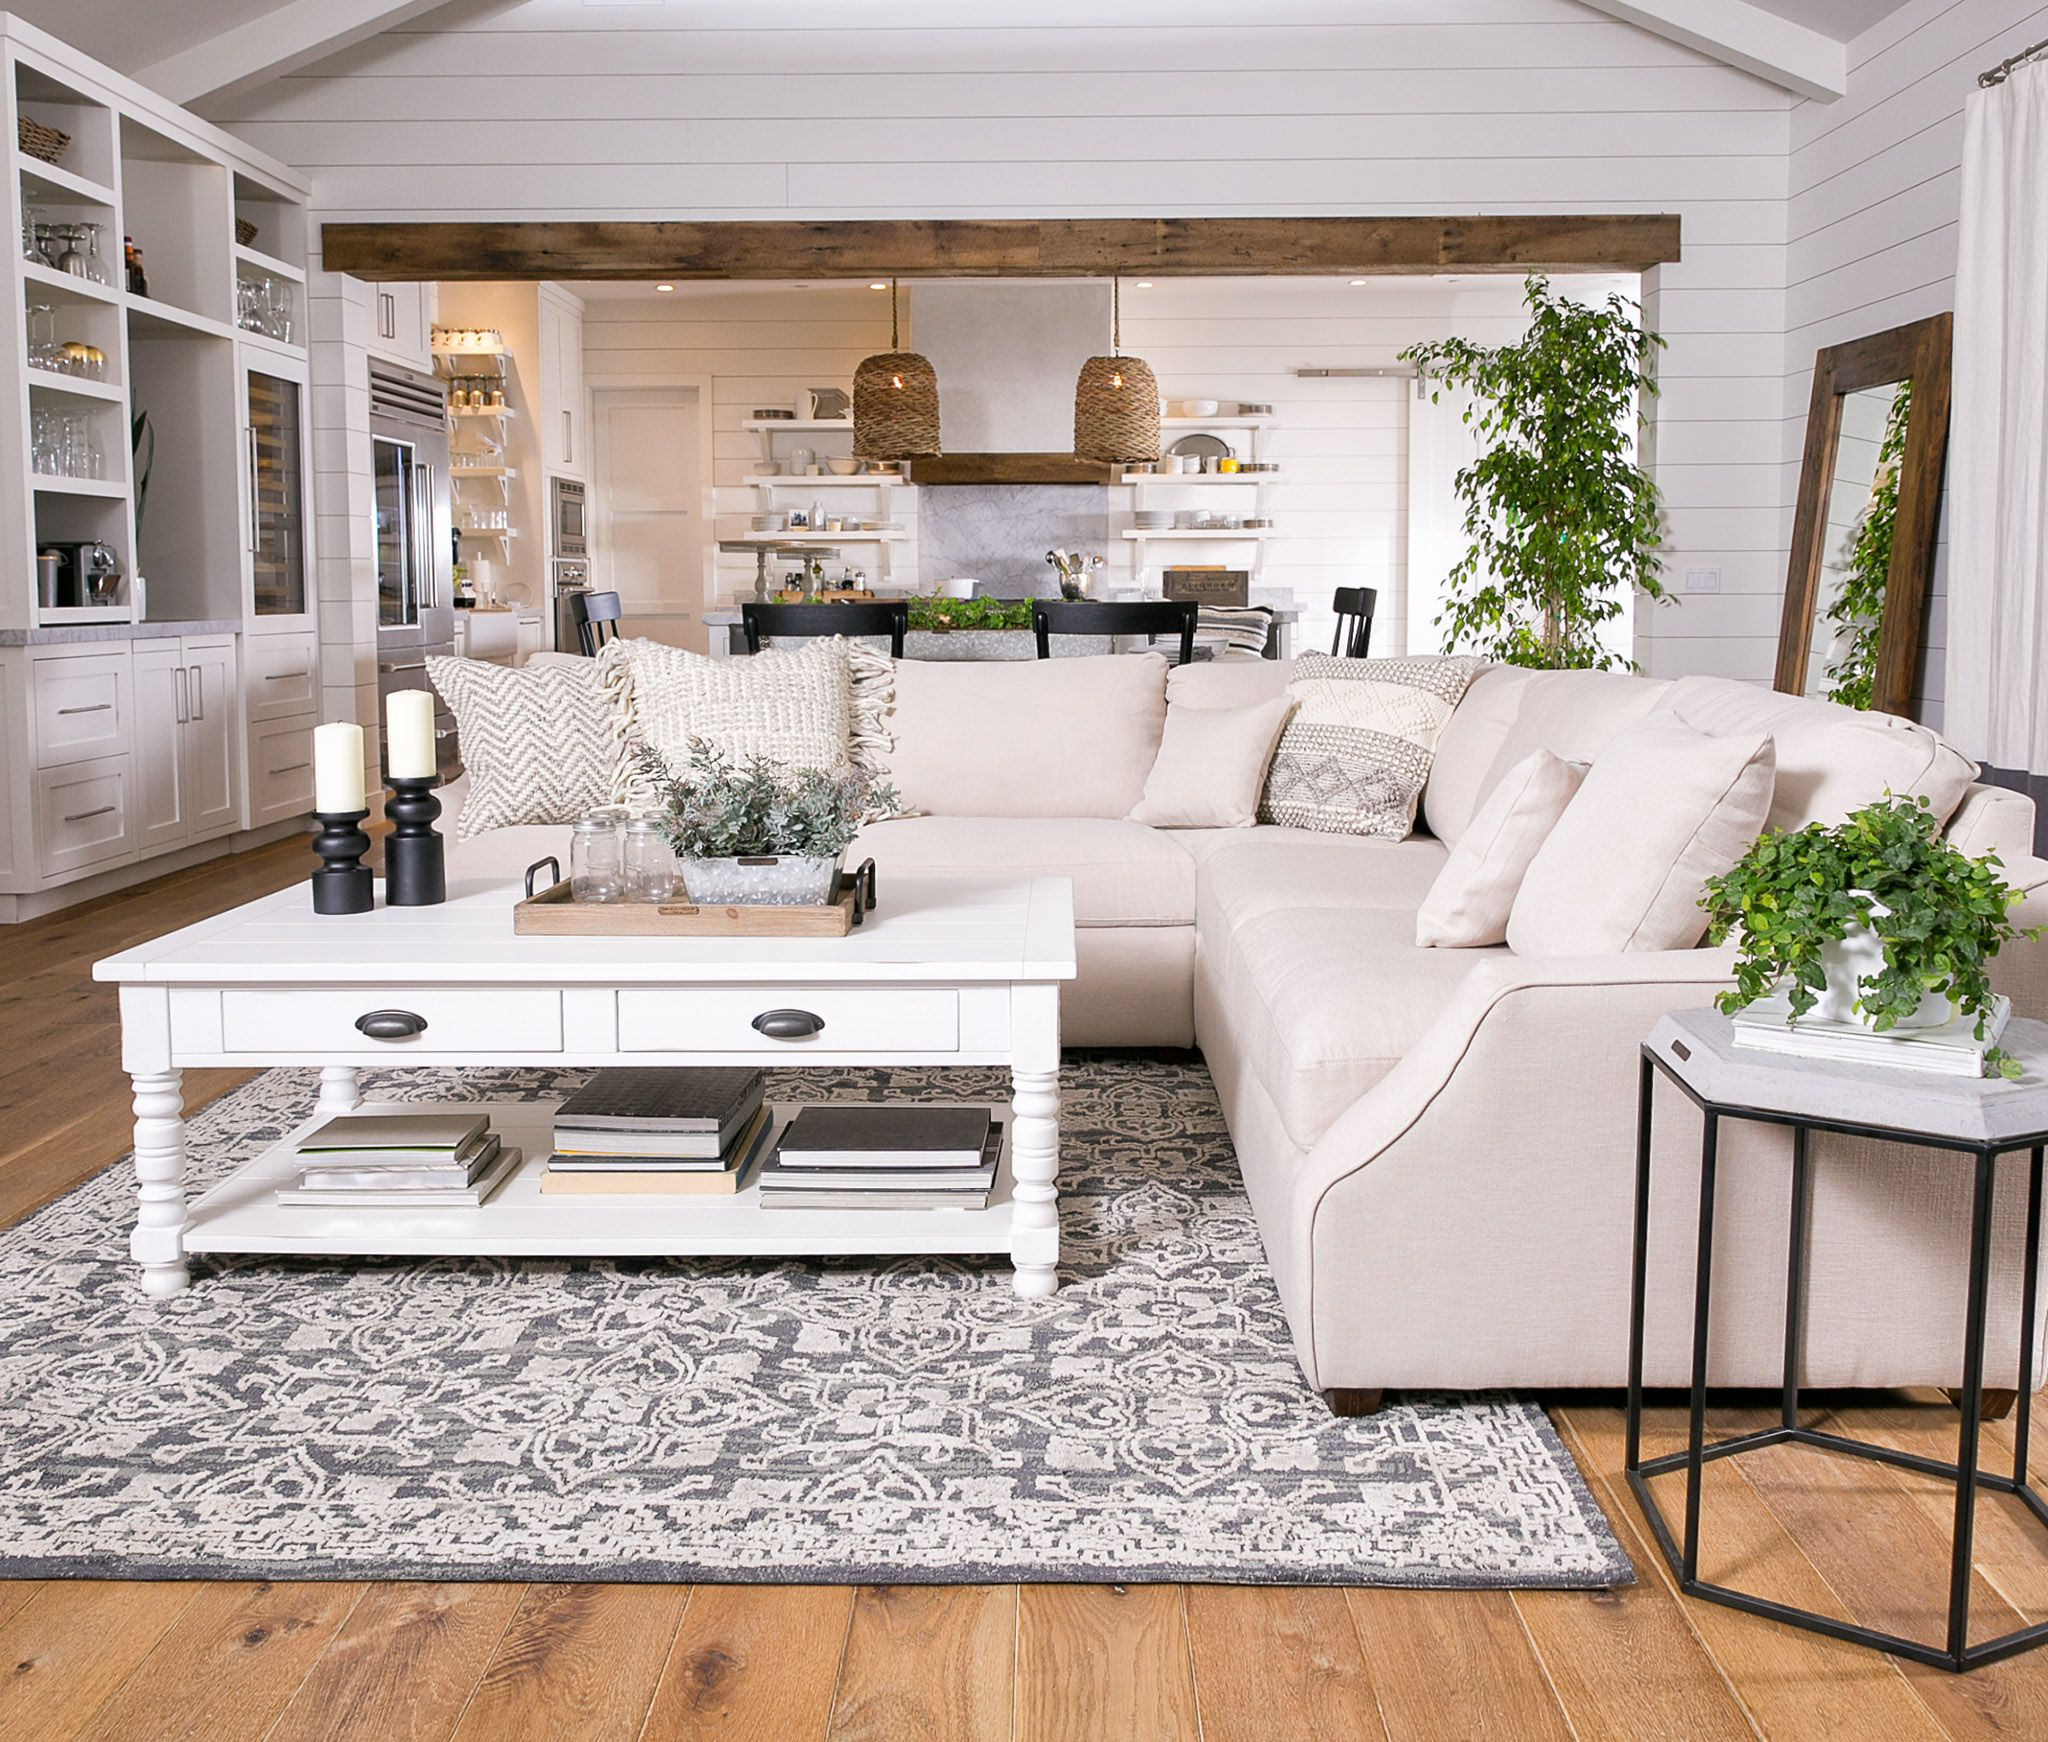 2018 Magnolia Home Homestead 3 Piece Sectionaljoanna Gaines In 2019 Pertaining To Magnolia Home Homestead Sofa Chairs By Joanna Gaines (Gallery 13 of 20)